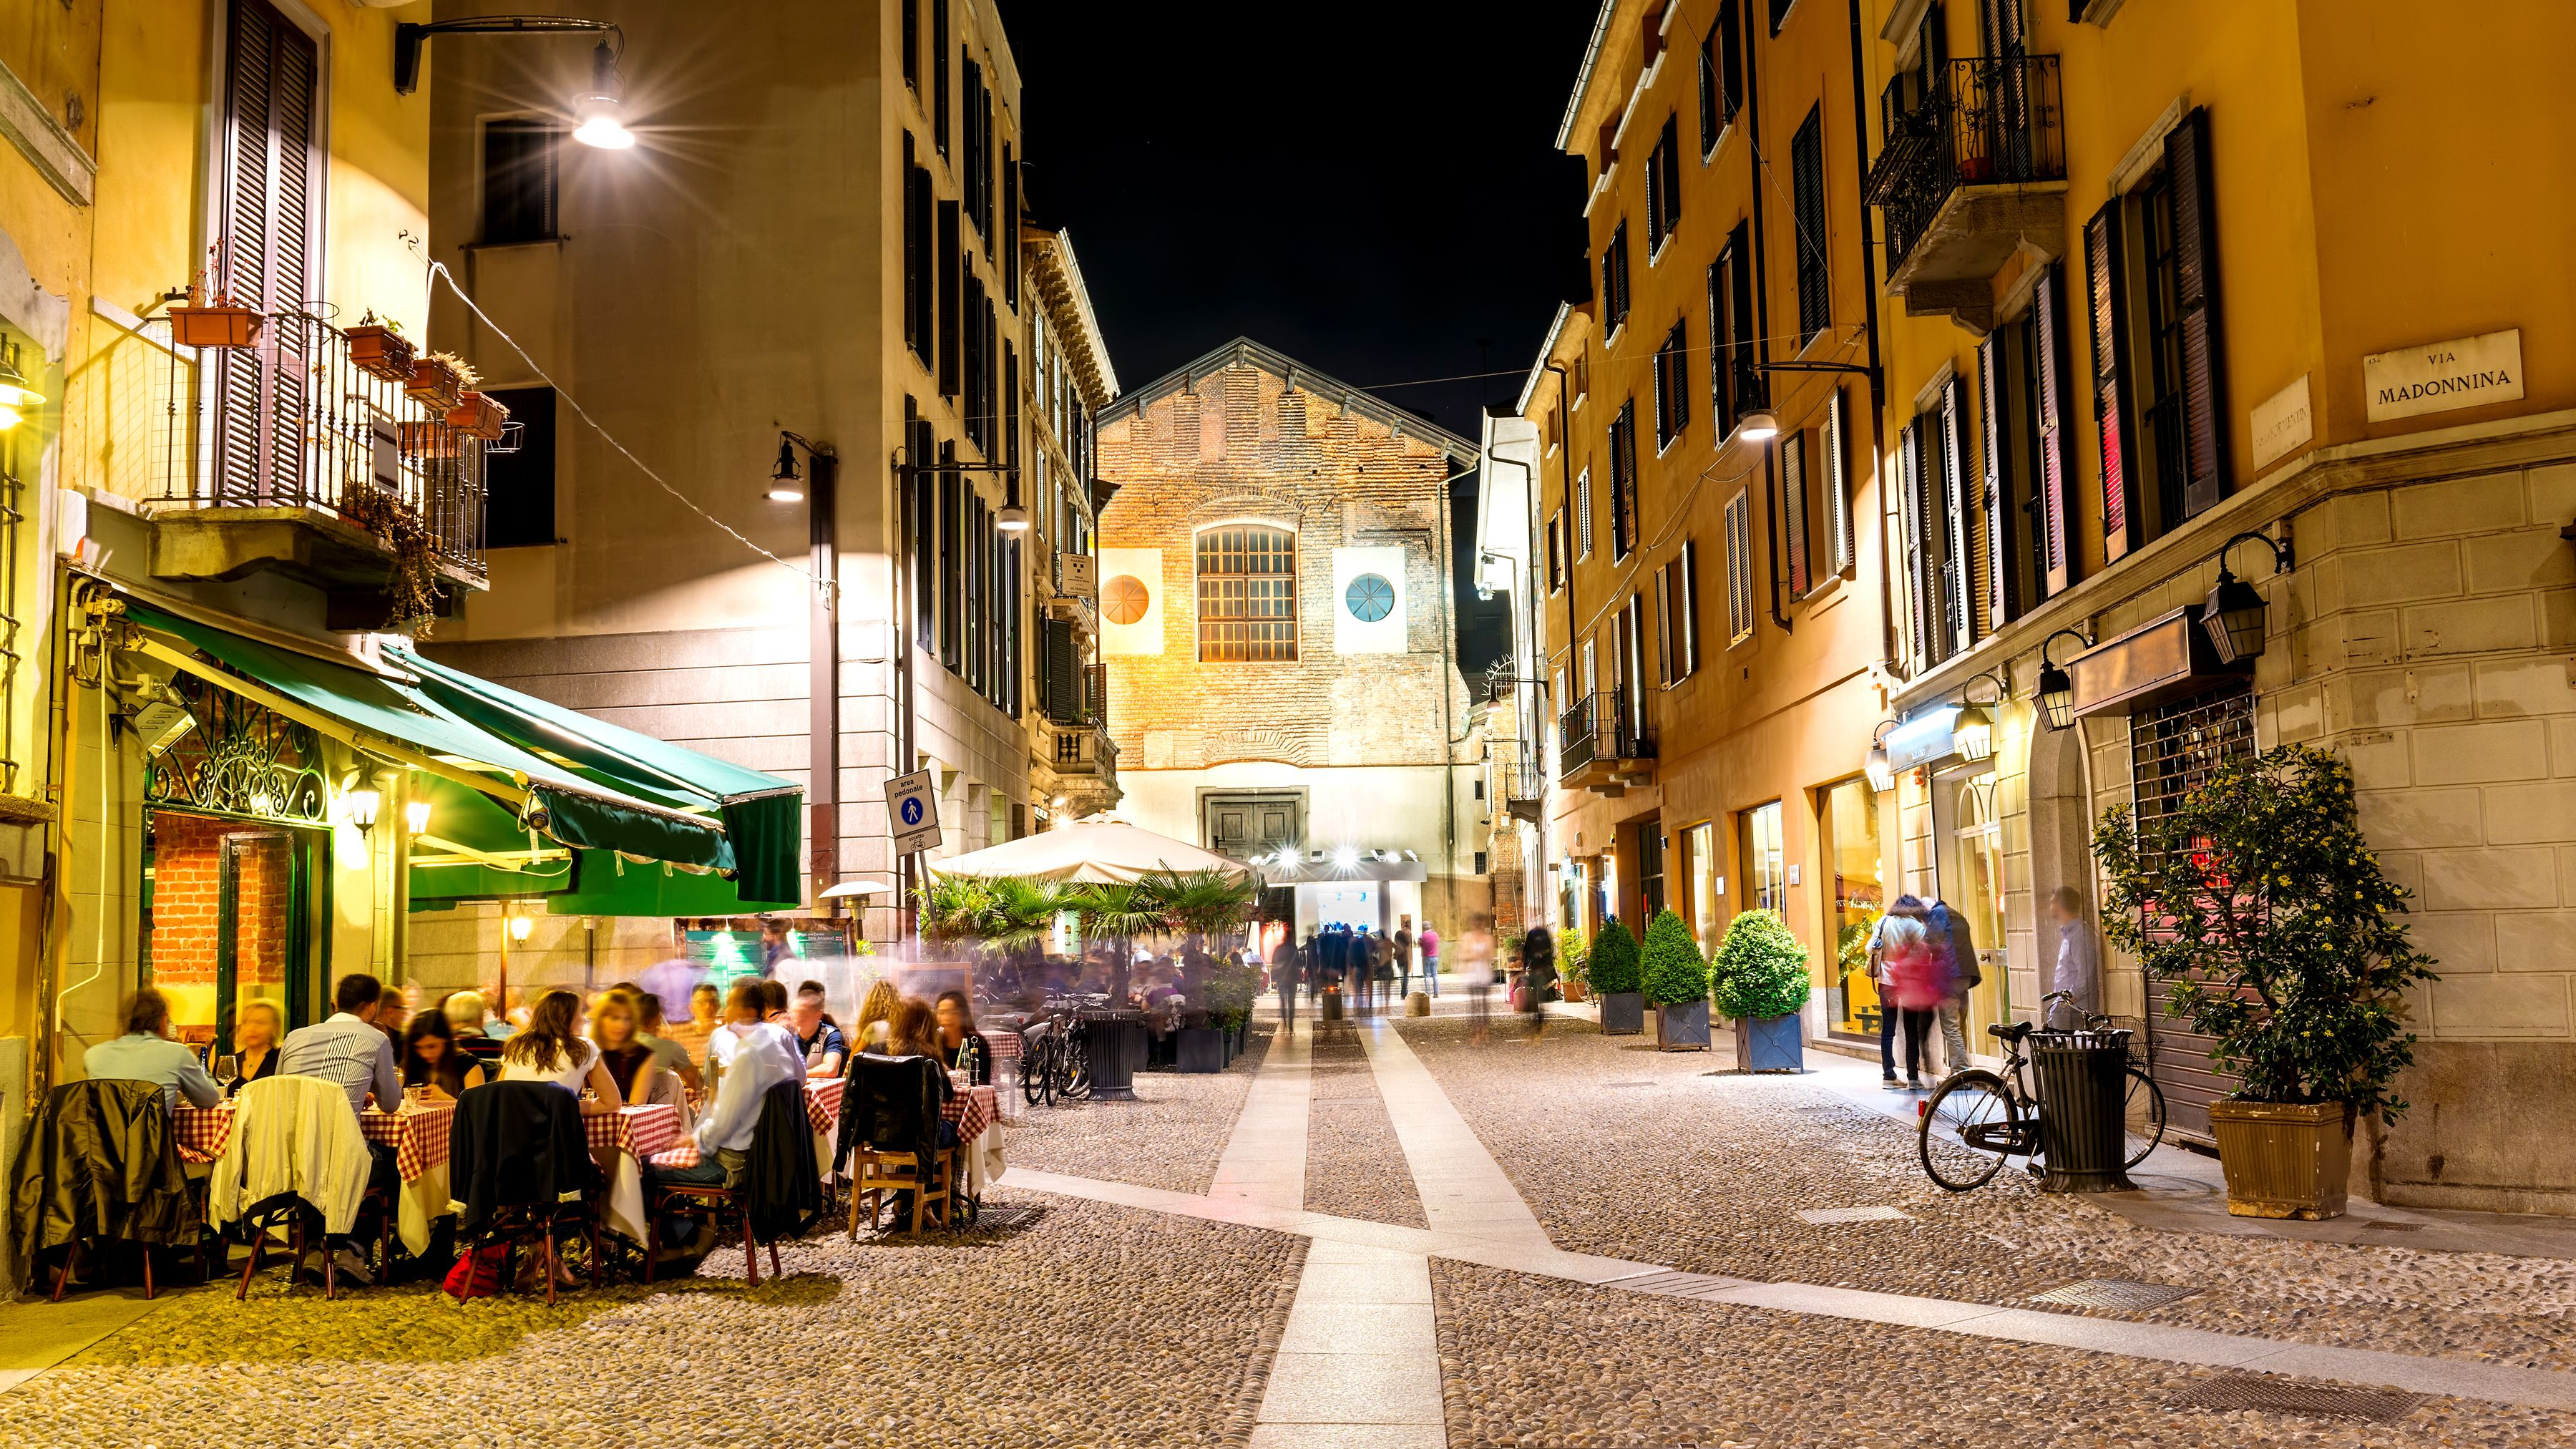 Restaurants on the street in Milan